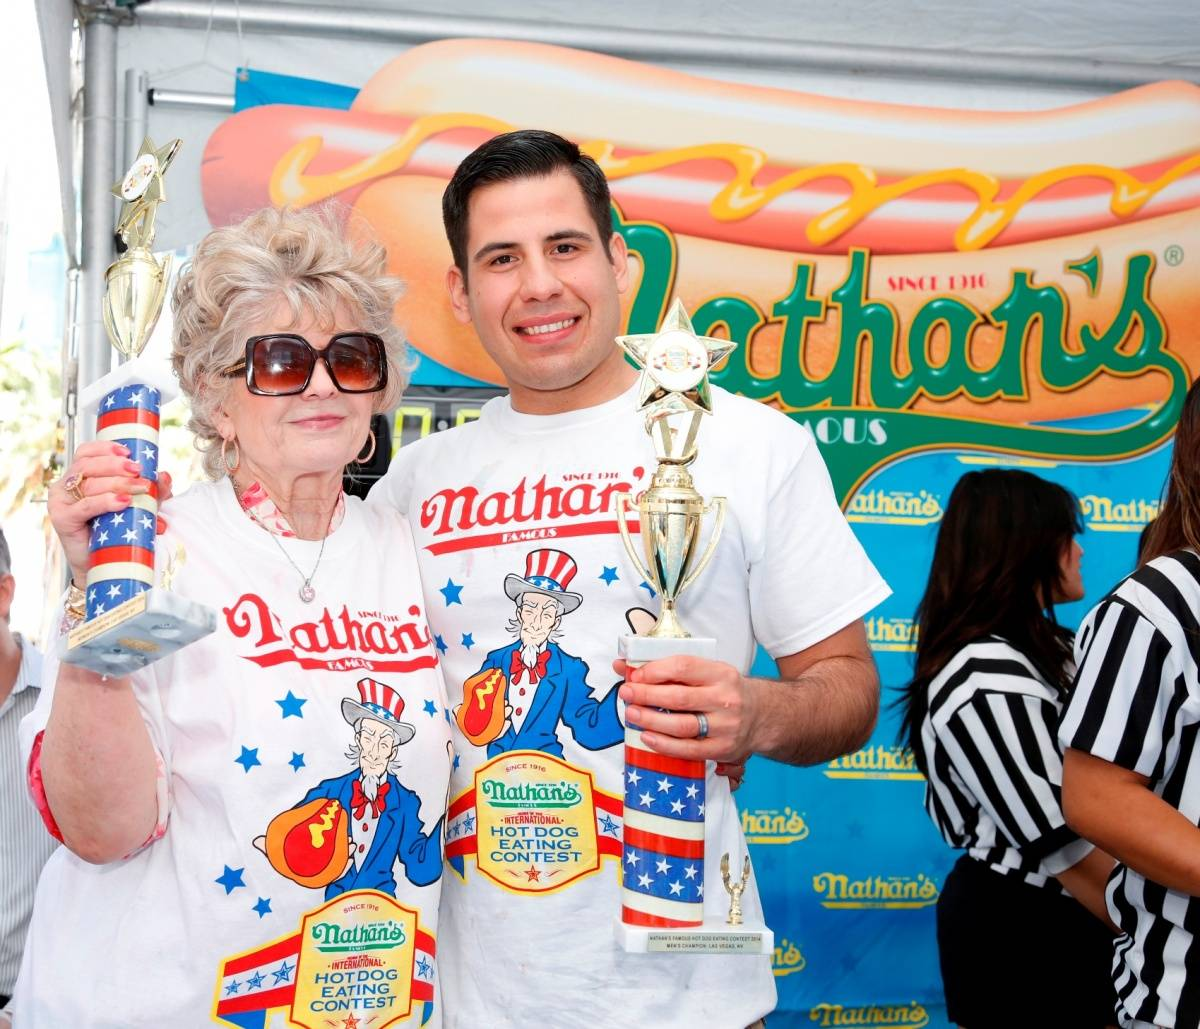 Nathan's Famous Hot Dog Eating Contest – Winners Pablo Martinez & Carlene LaFevre